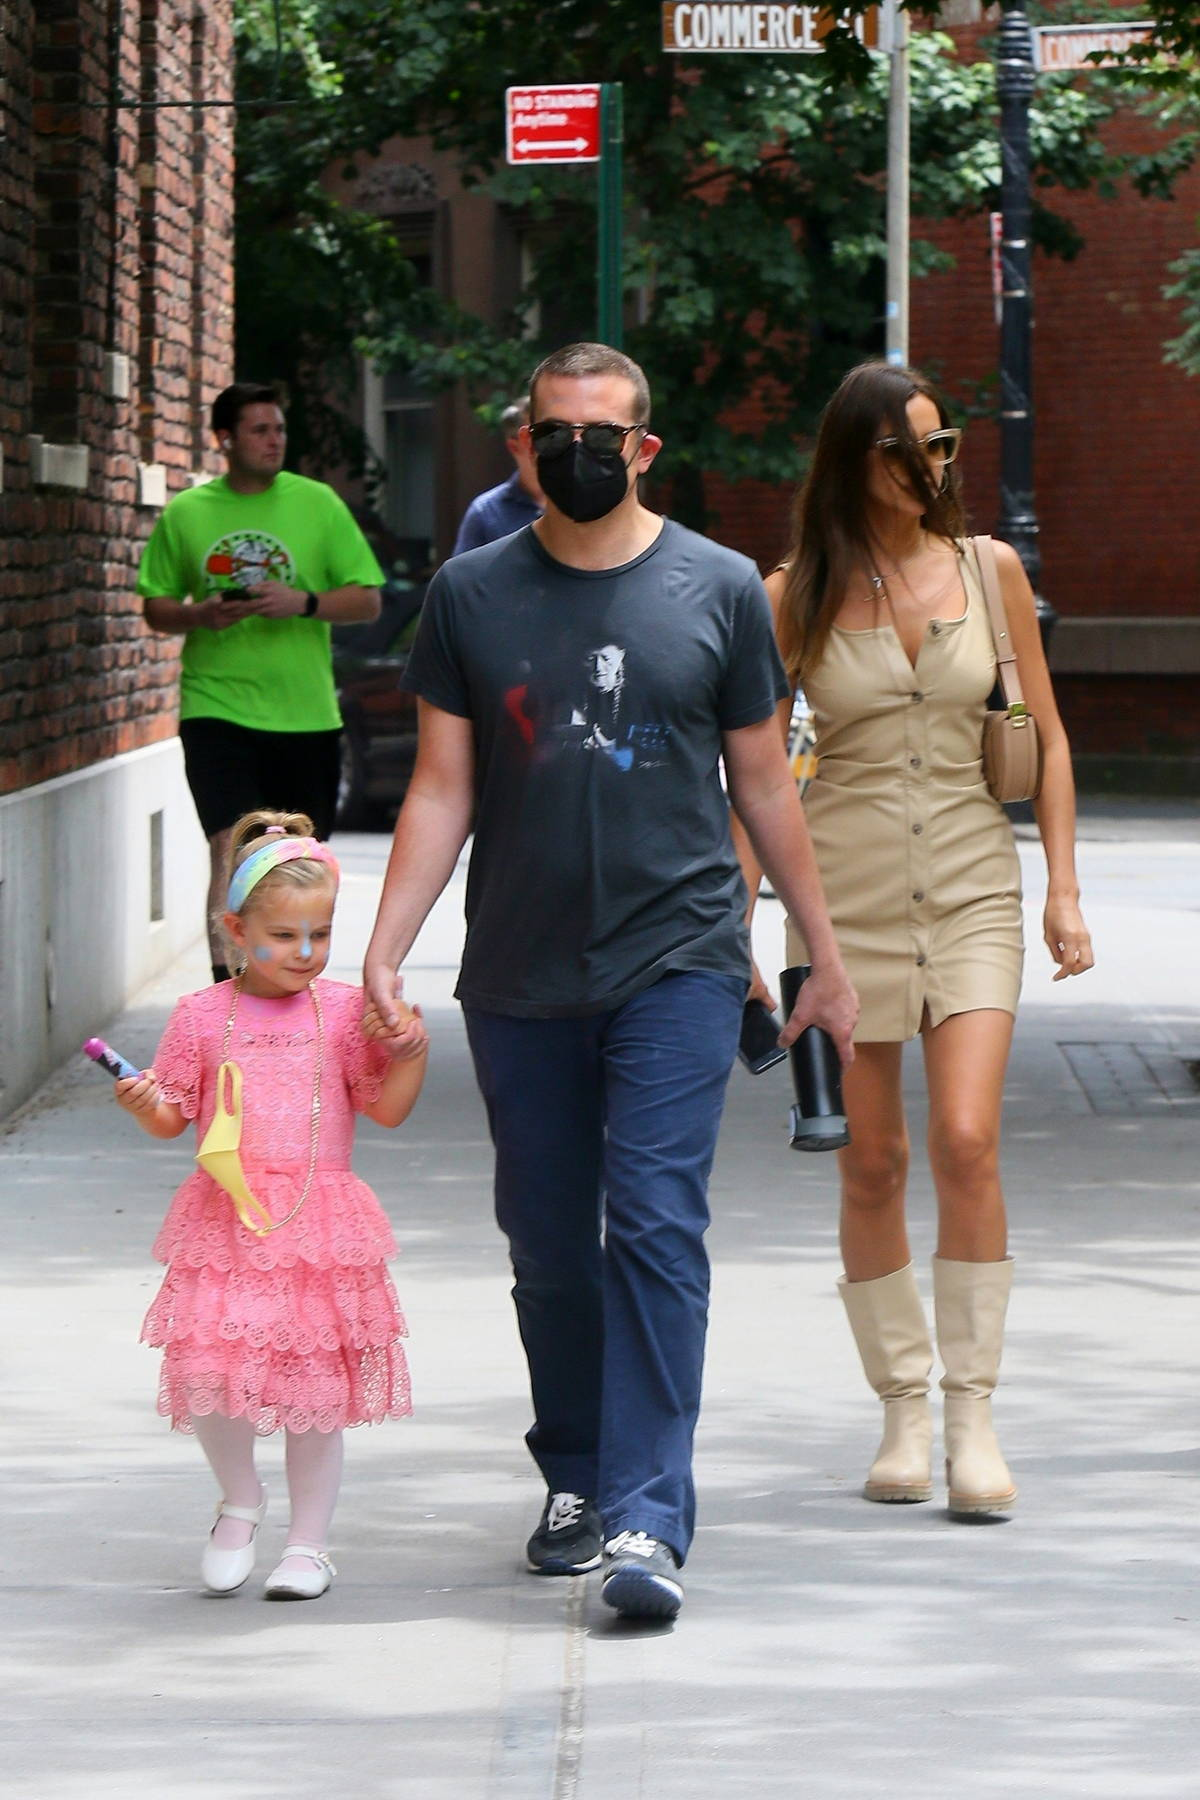 Irina Shayk and Bradley Cooper reunited together to spend some quality time with their daughter Lea in New York City